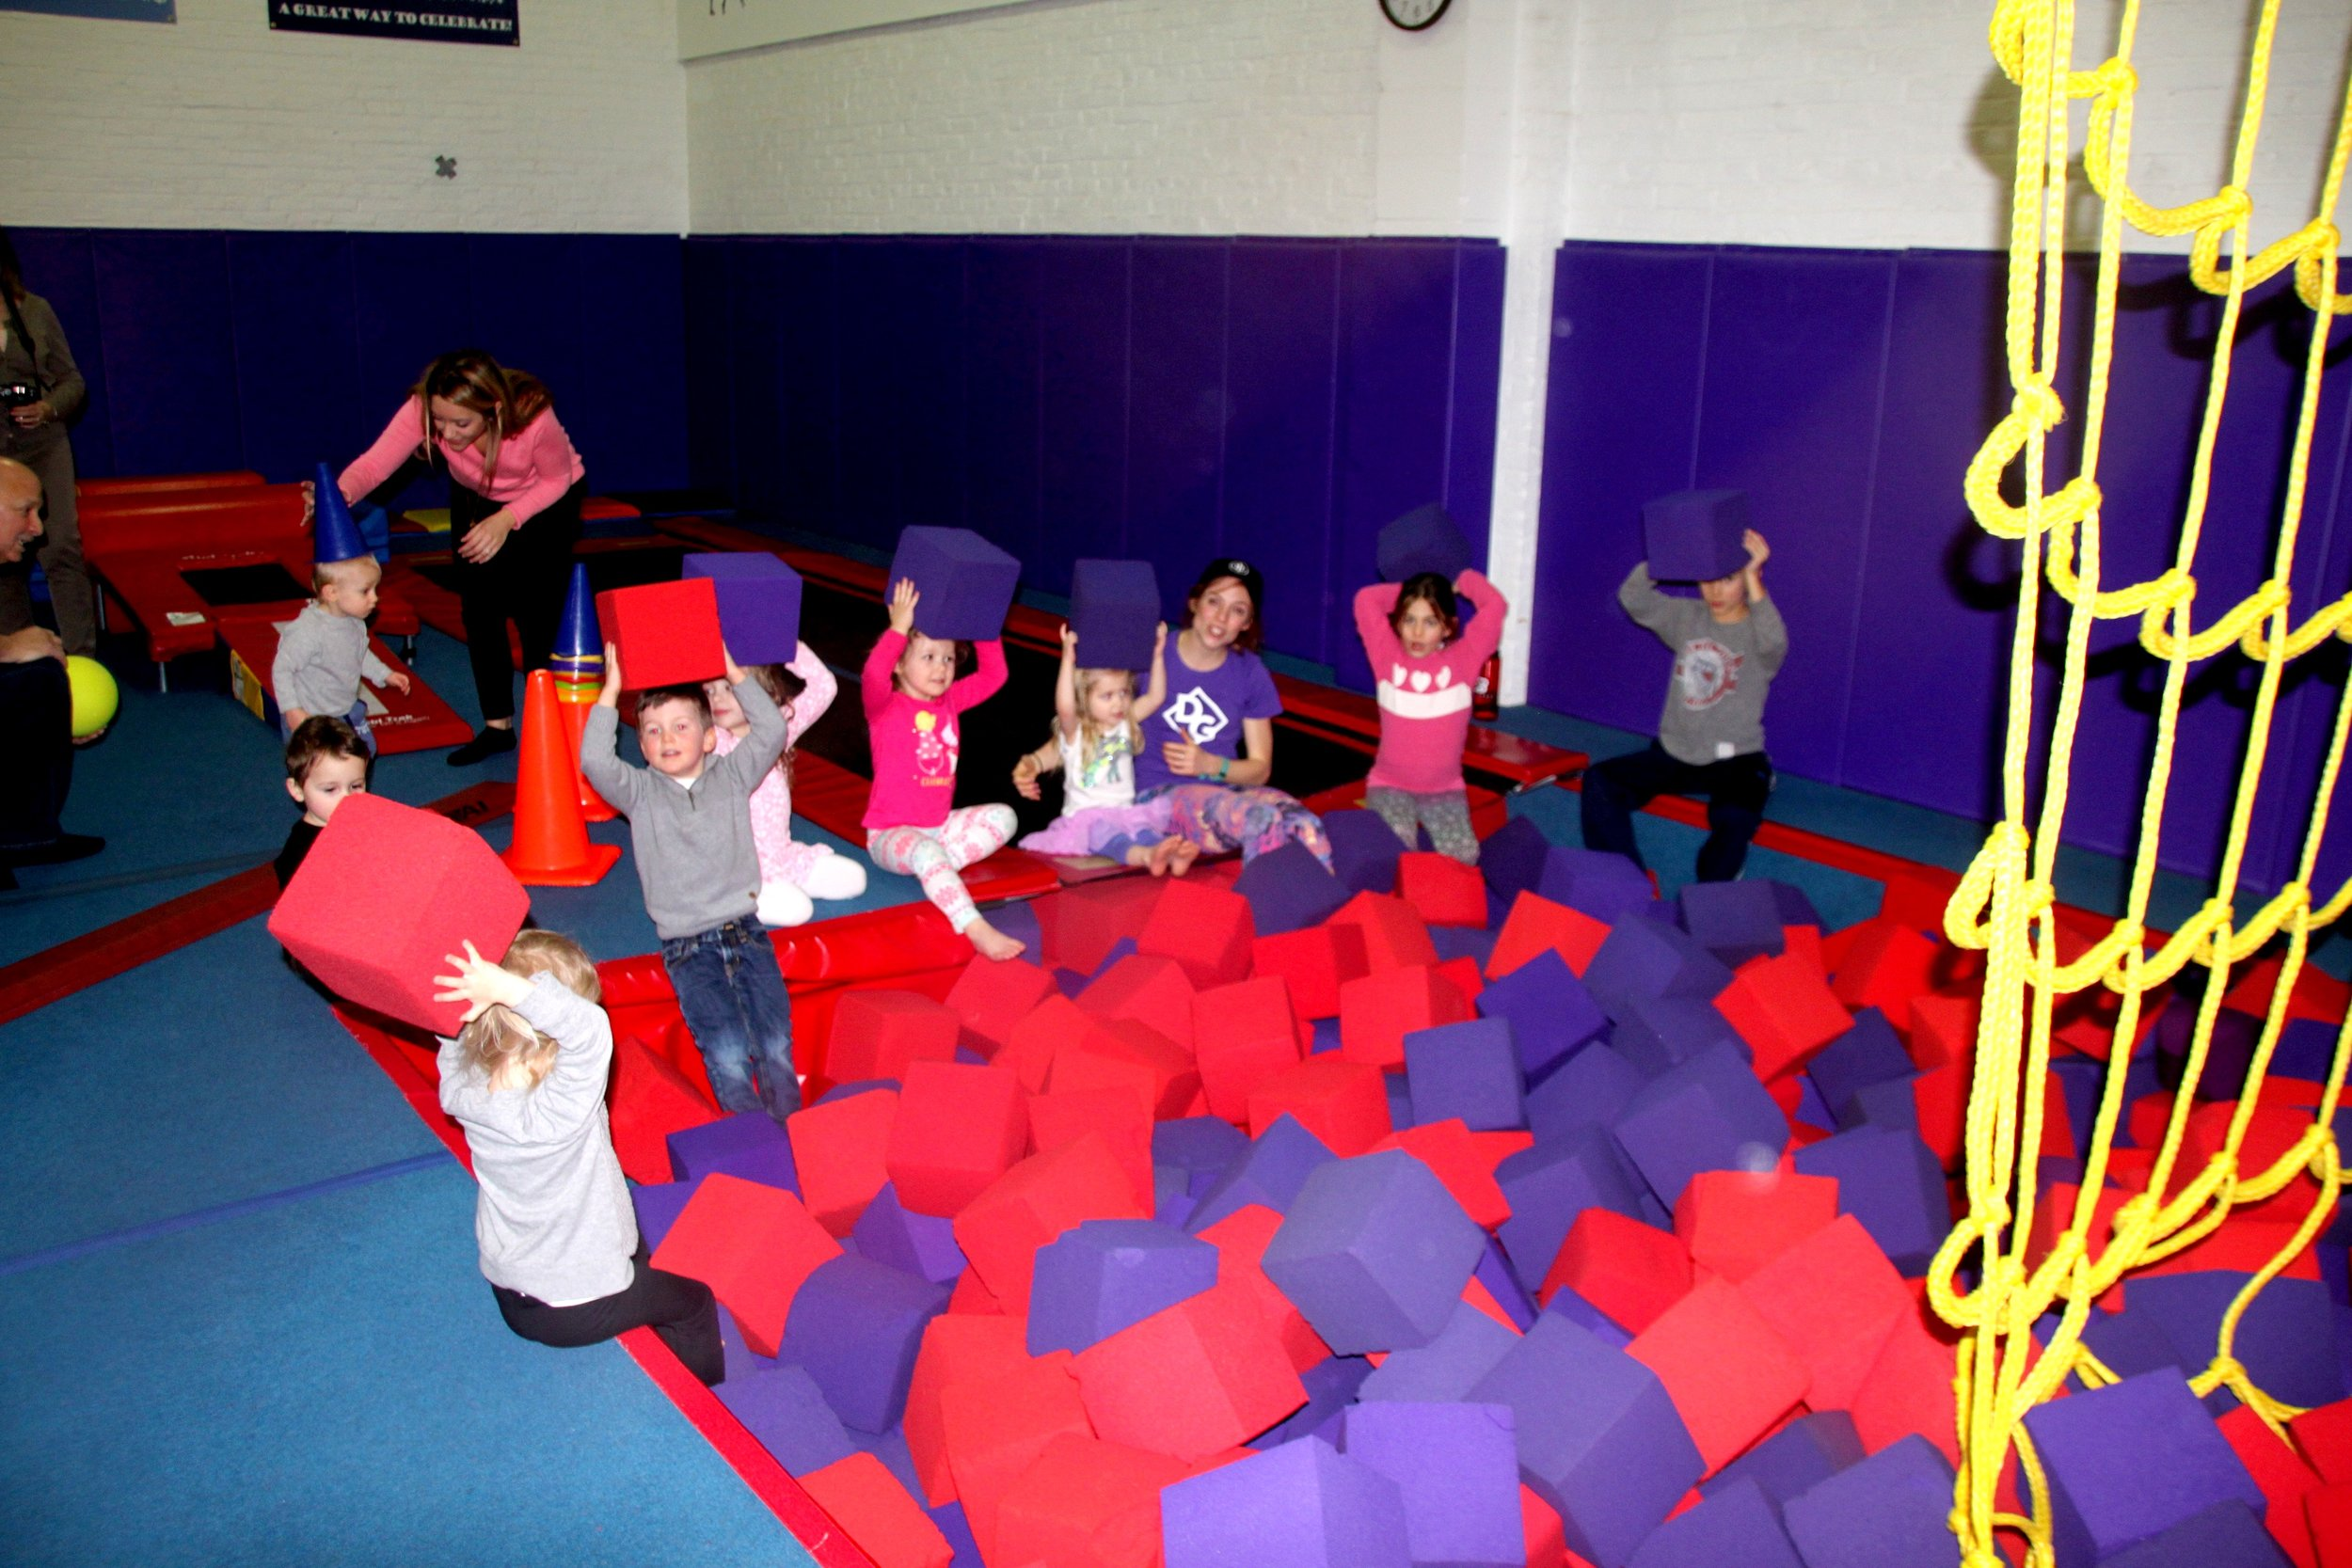 The kids having a blast in the ball pit